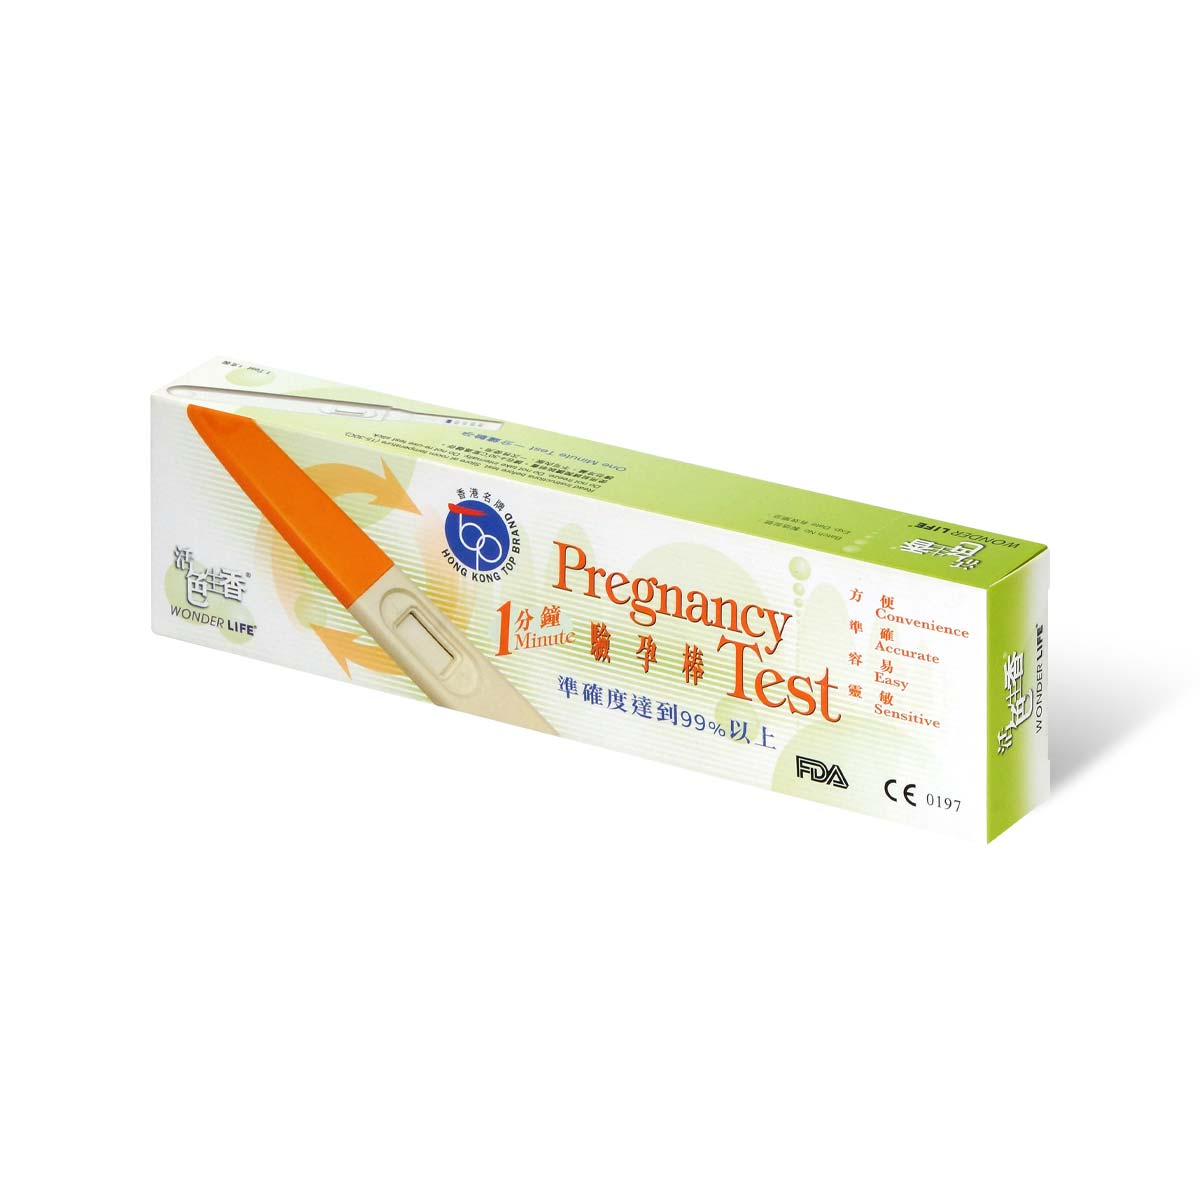 Wonder Life 1 minute pregnancy test